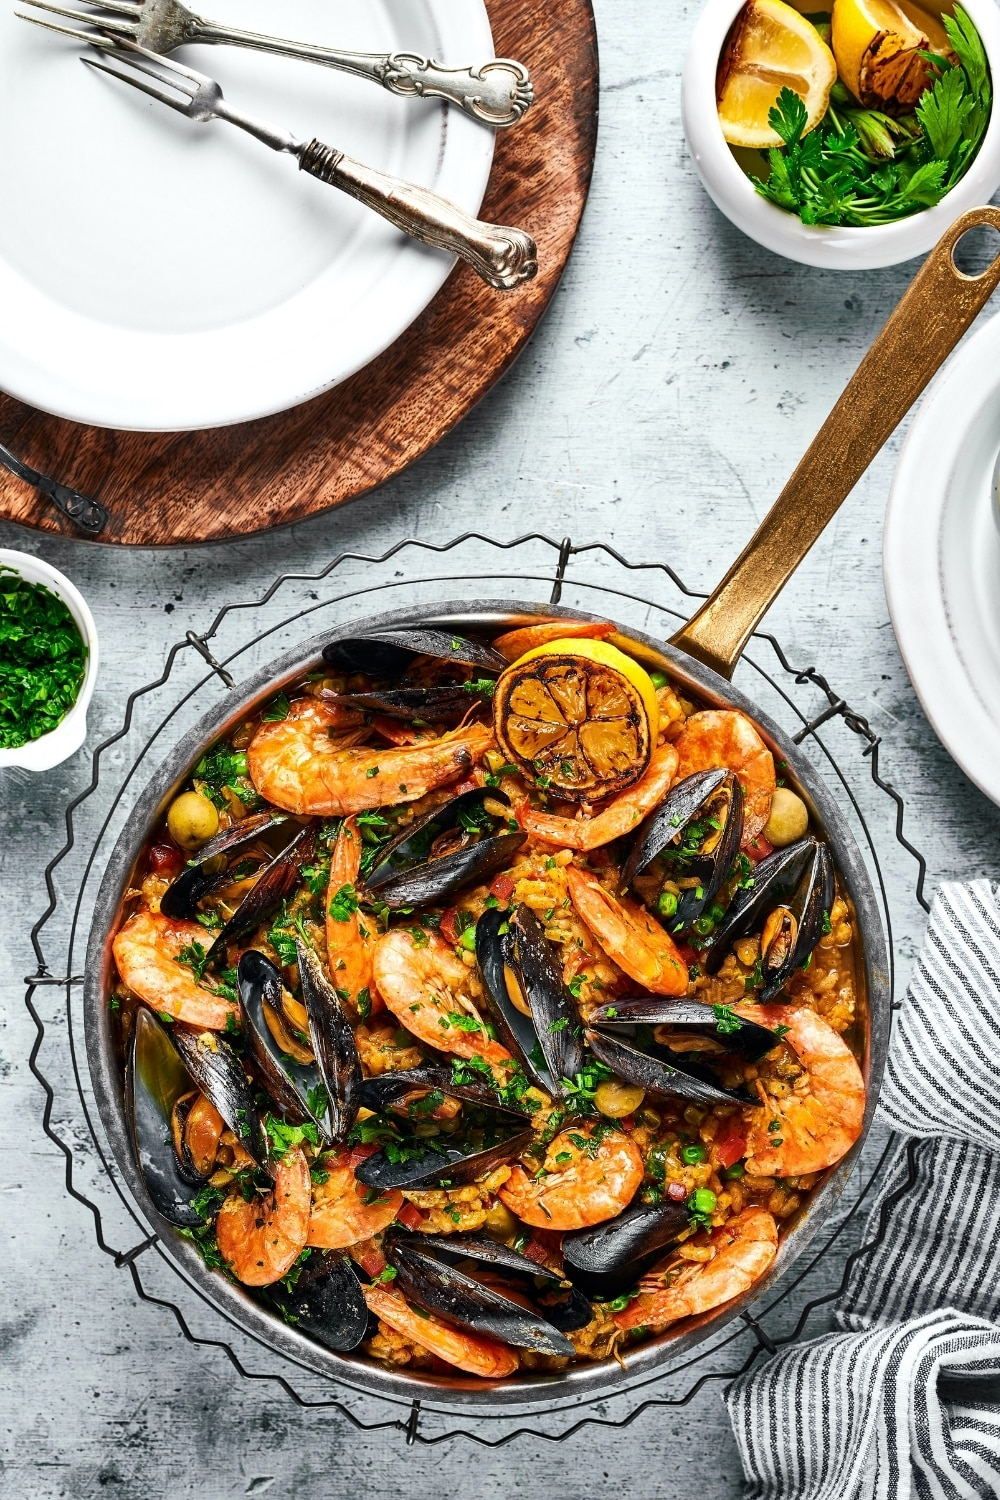 A pan with seafood paella in it. Behind it is part of a wooden serving board with a white plate on top with a fork on it. Everything is on a gray counter.